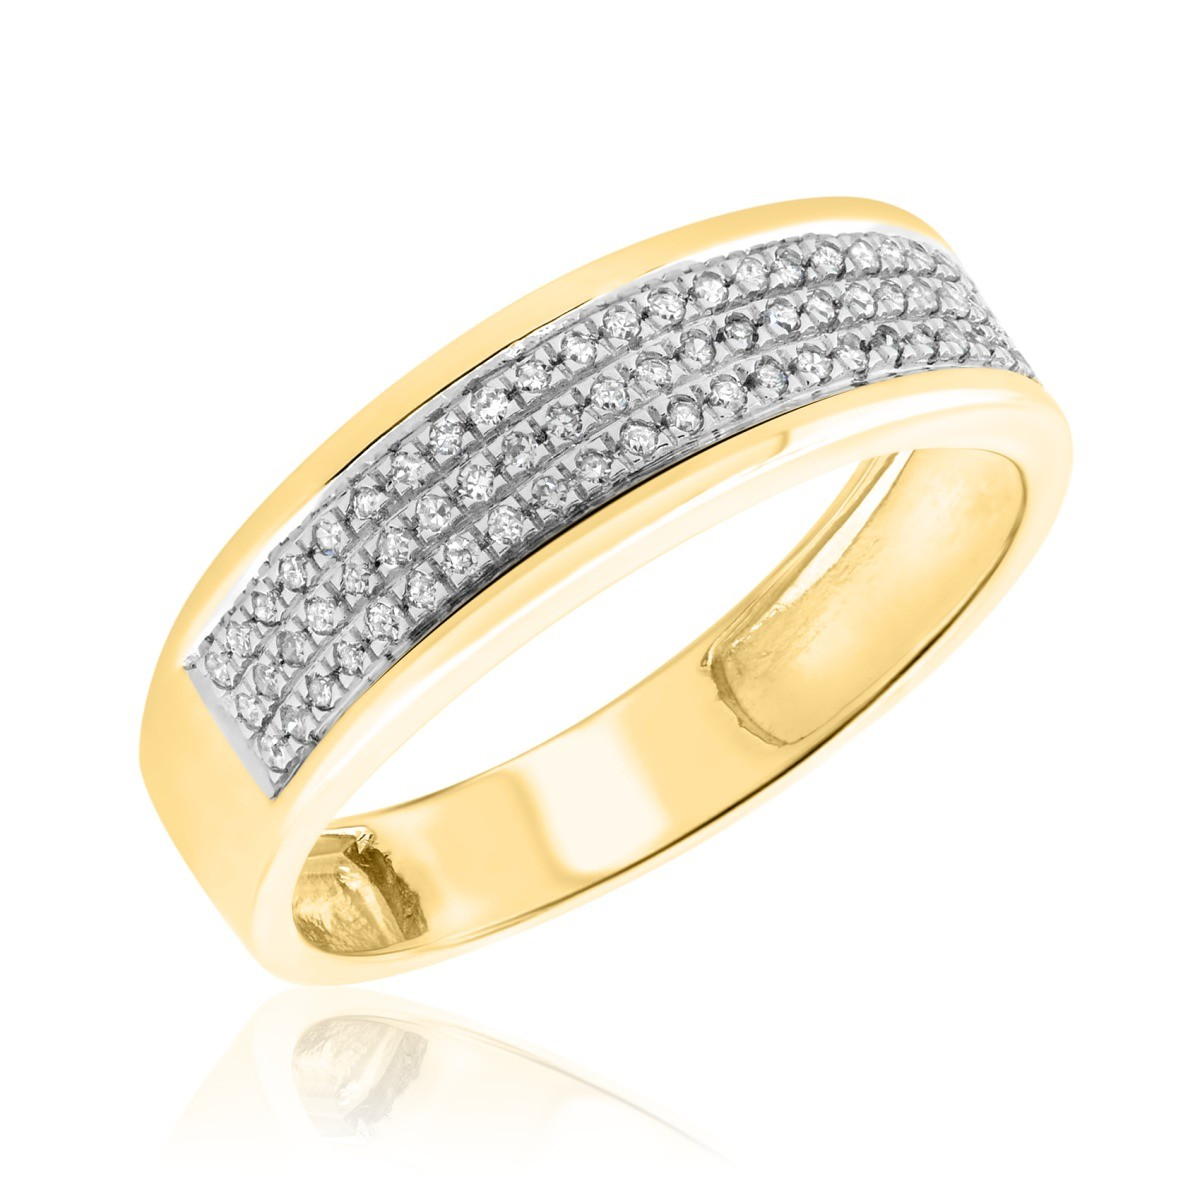 1/6 Carat T.W. Diamond Ladies Wedding Band  14K Yellow Gold